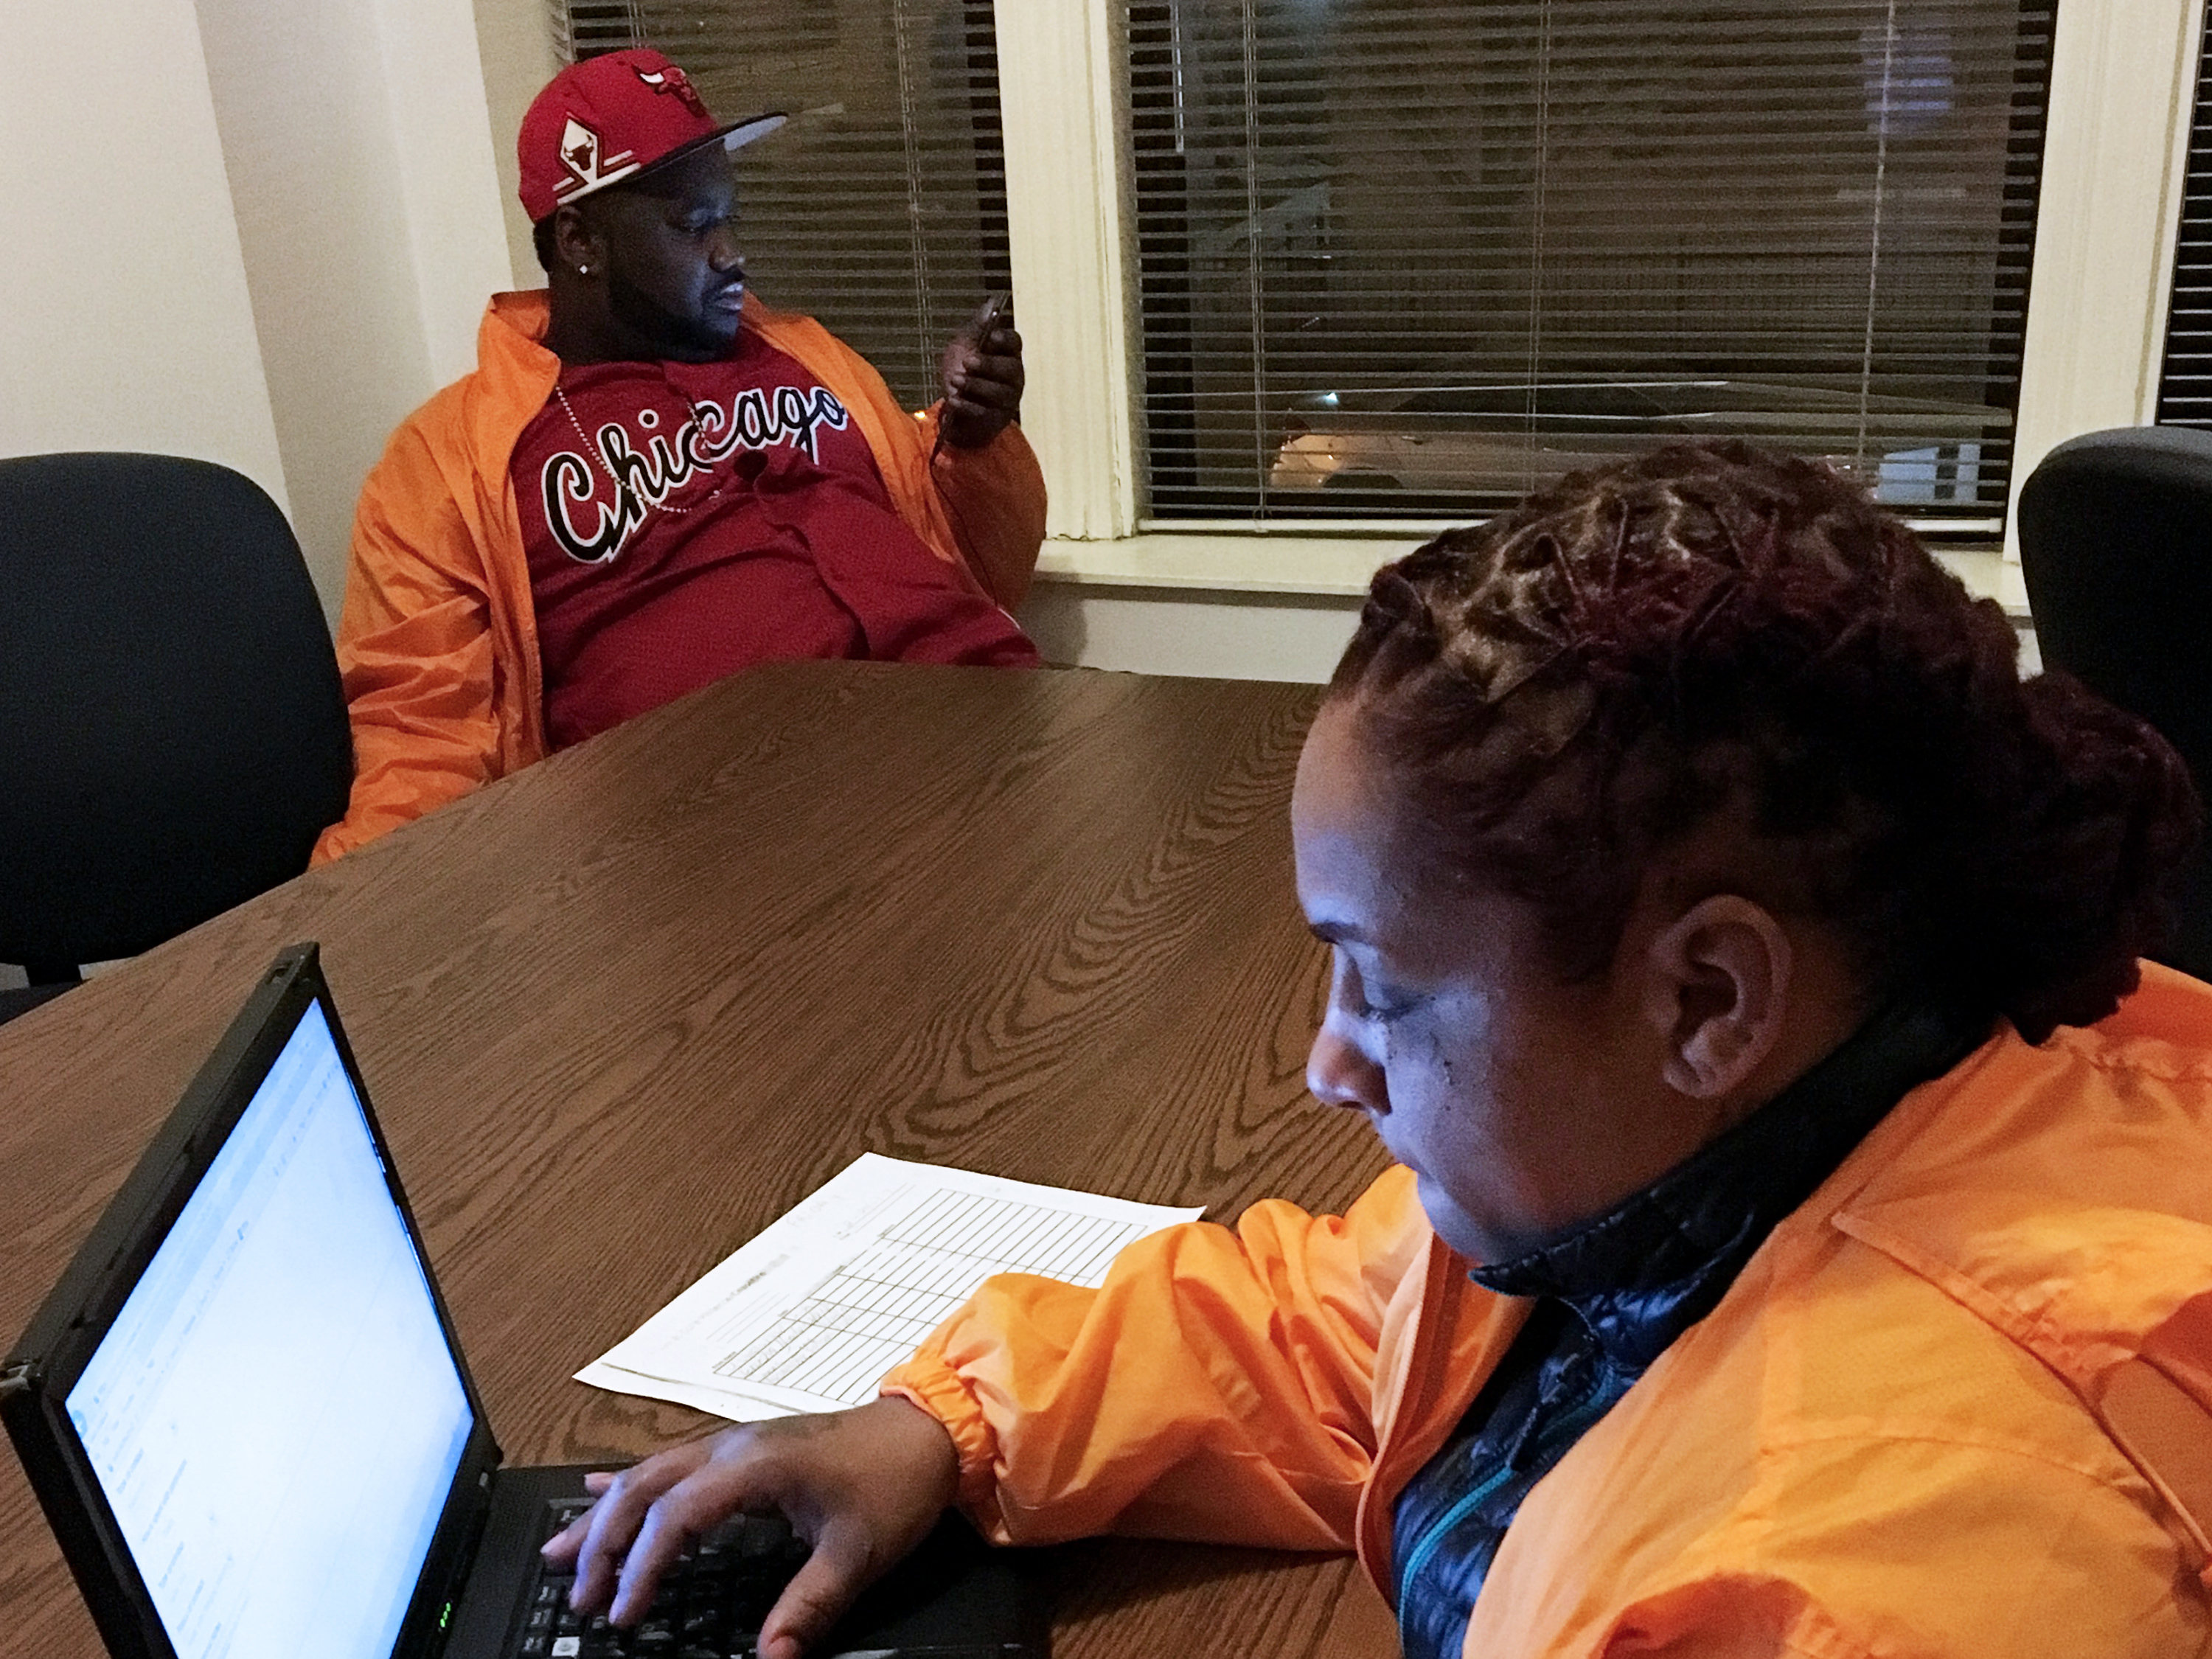 Jerusha Hodge is among the handful of CeaseFire outreach workers who work to curtail violence in three South Side Chicago neighborhoods. Hodge says shootings are down in the areas where CeaseFire has a presence.     (Cheryl Corley/NPR)